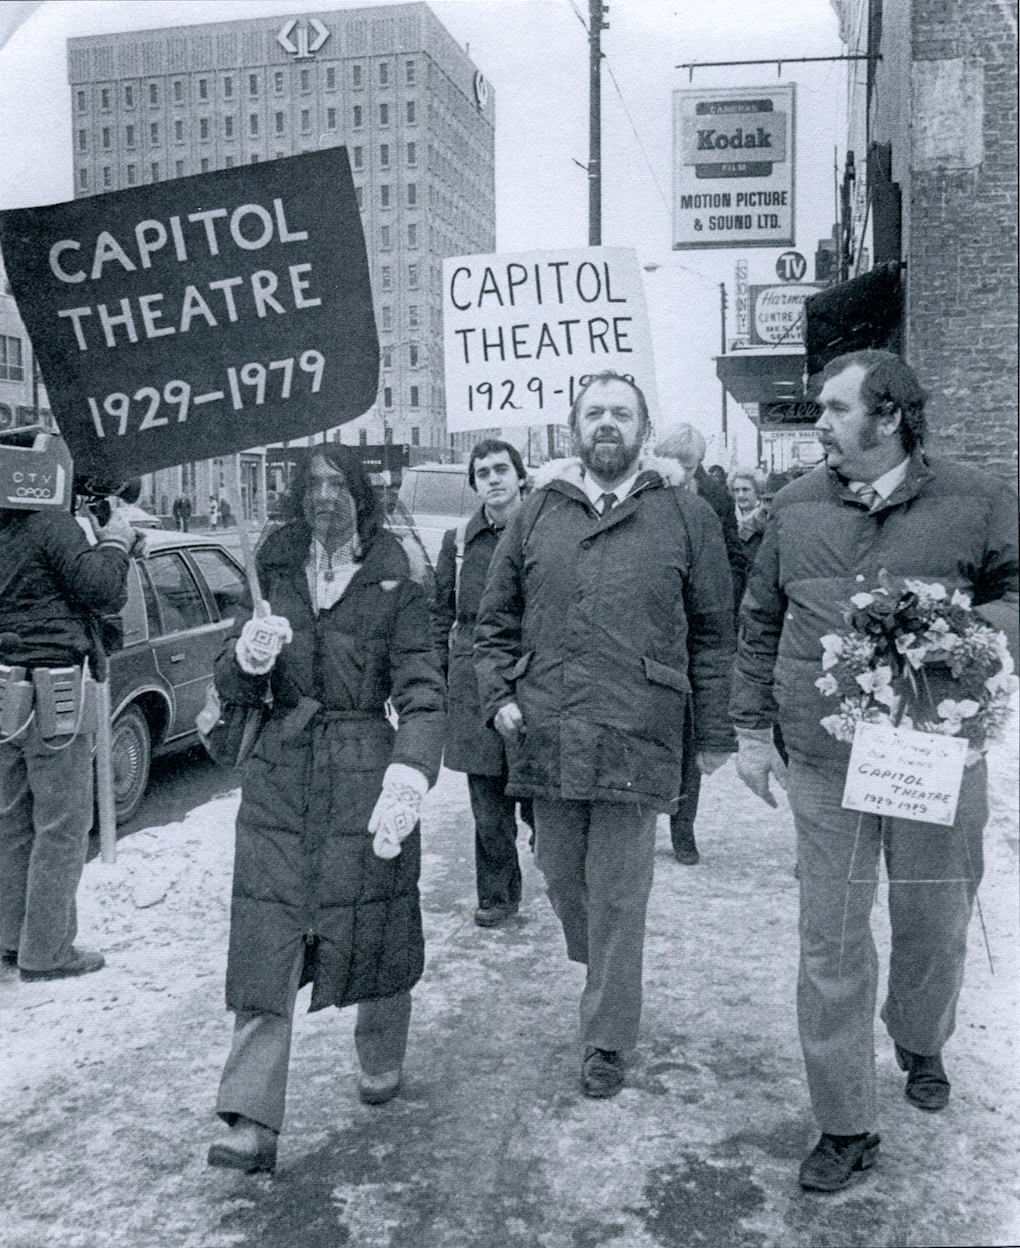 Black-veil-wearing Peggy Sarjeant, left, and her husband Bill Sarjeant, middle, host a public mourning of the Capitol two years after its demolition. Bill Sarjeant died in 2002. Peggy went on to lead Saskatoon's heritage community. (Saskatoon StarPhoenix)